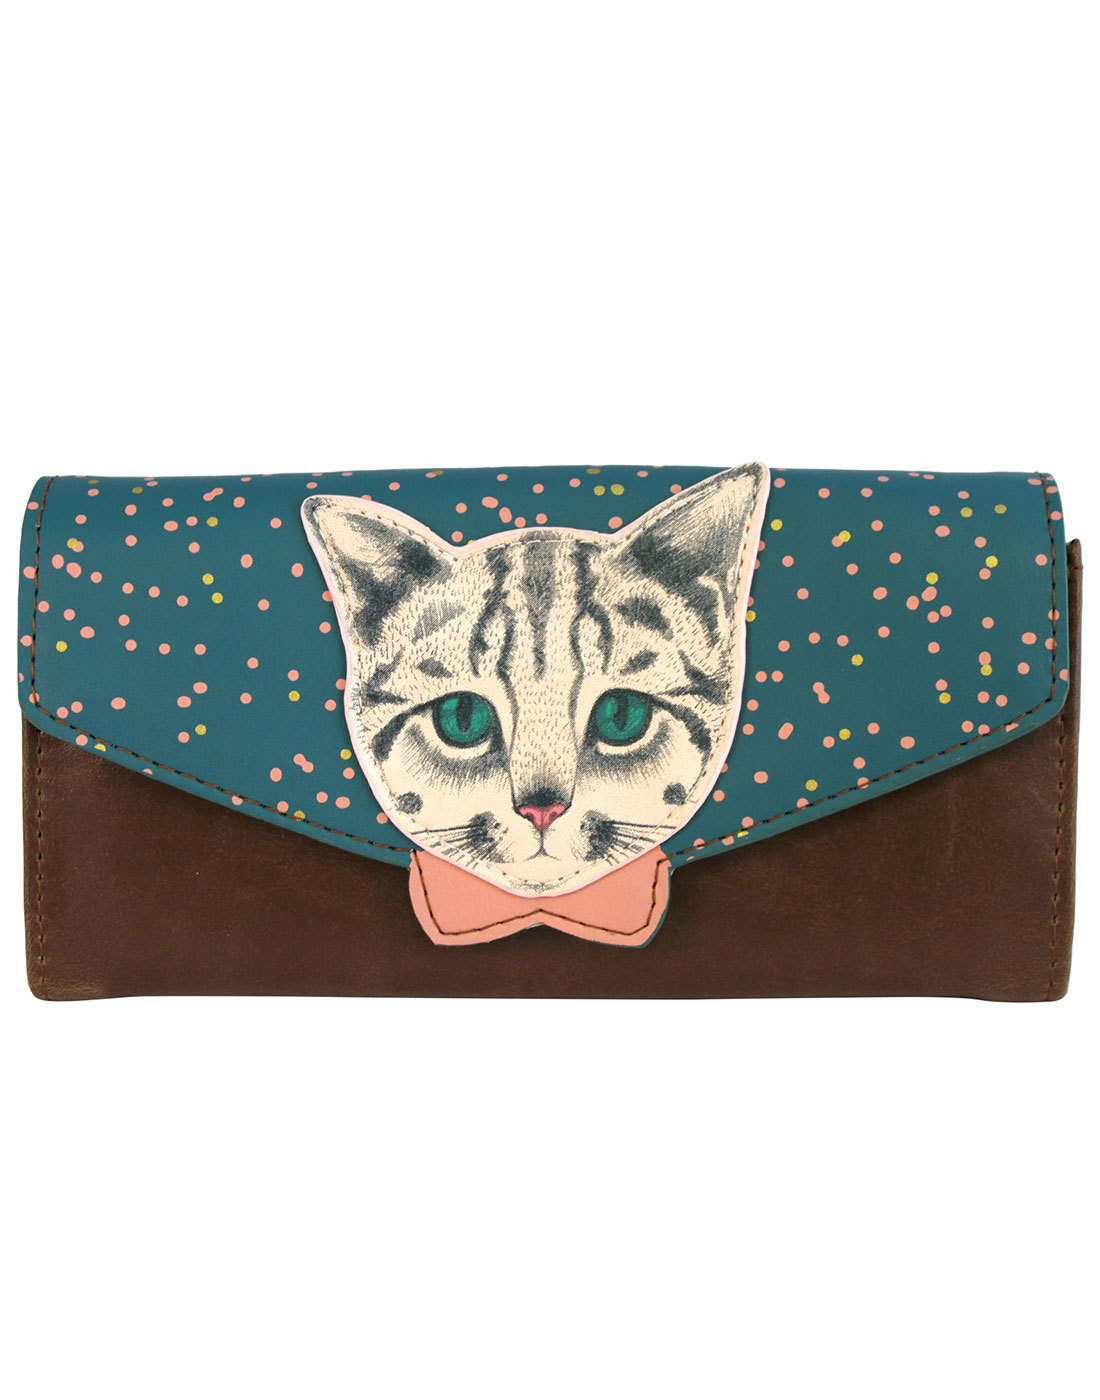 Meow DISASTER DESIGNS Retro Kitty Wallet